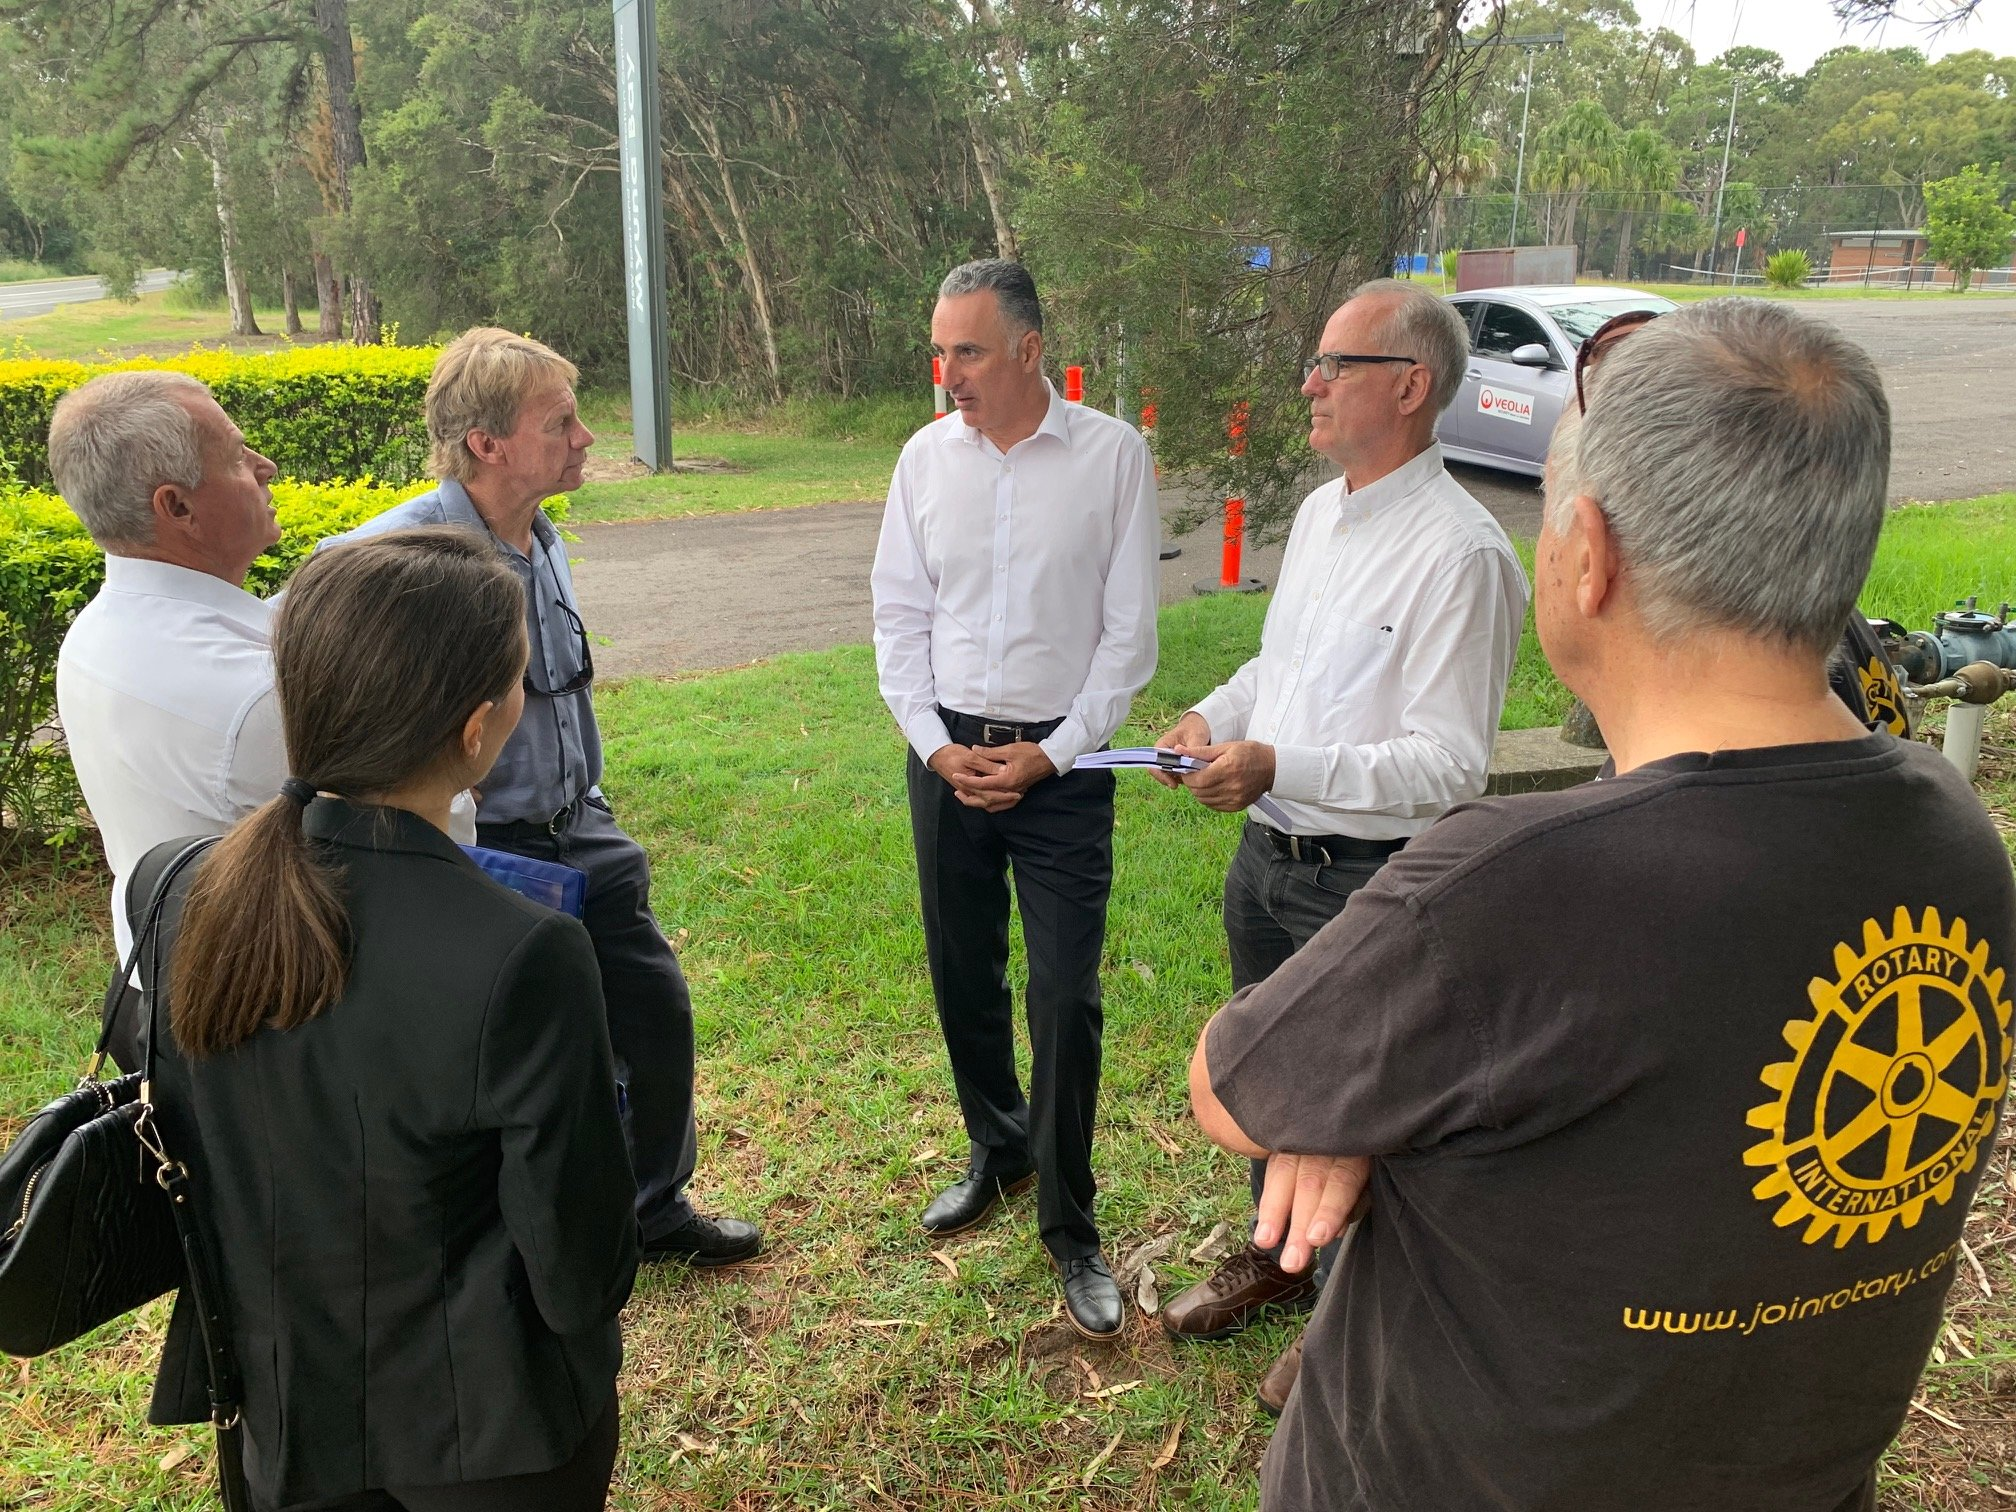 I joined NSW Minister for Sport John Sidoti outside Myuna Bay Sport and Recreation Centre this morning to discuss the centre's recent closure by the Office of Sport.